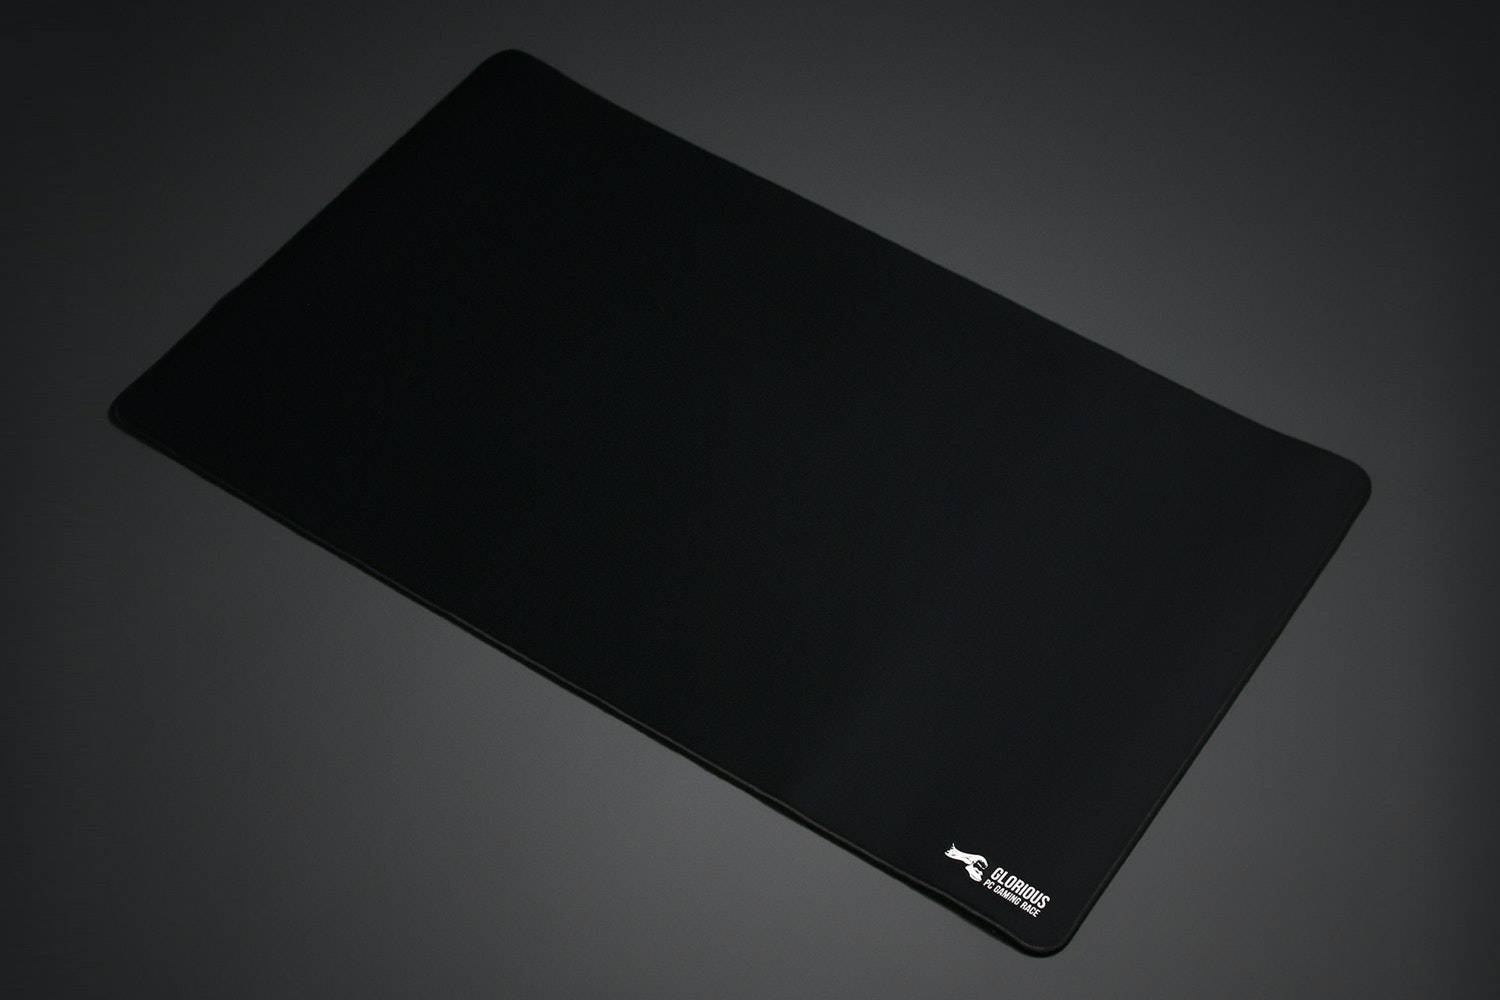 Glorious PC Gaming Race Stitched Playmat